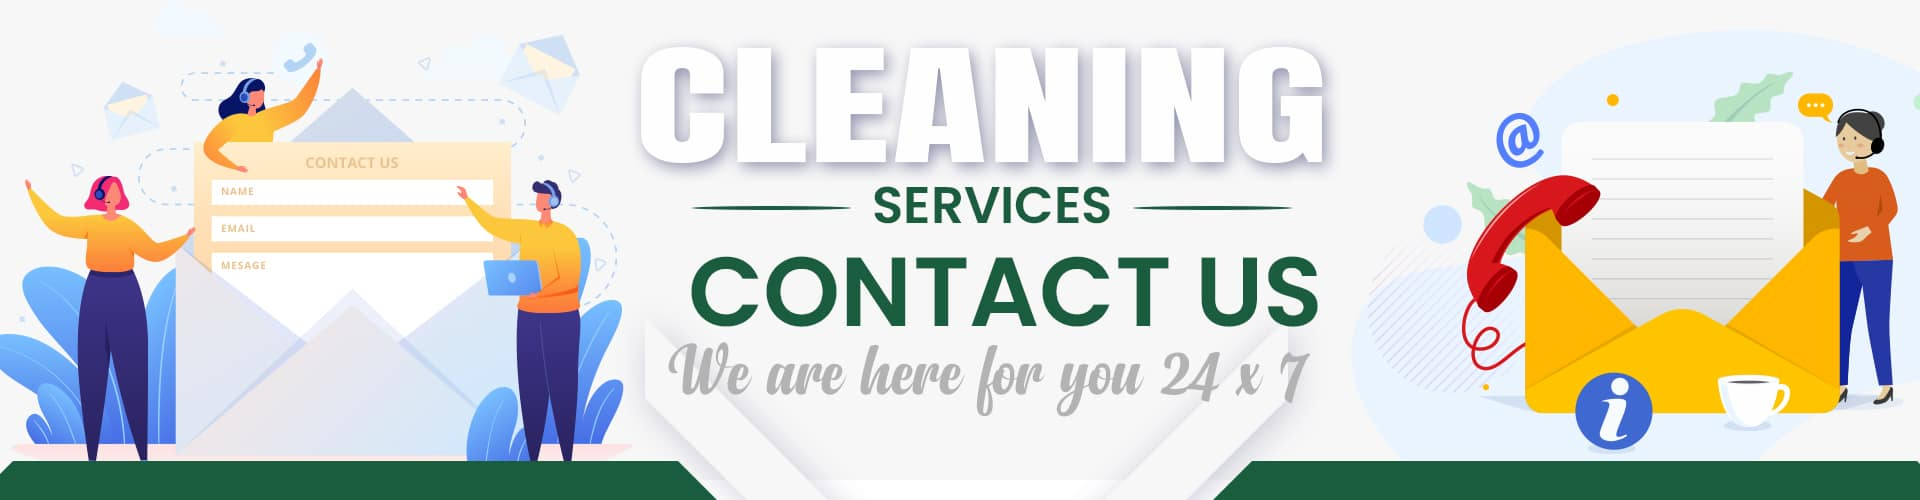 Contact Us For Cleaning Services